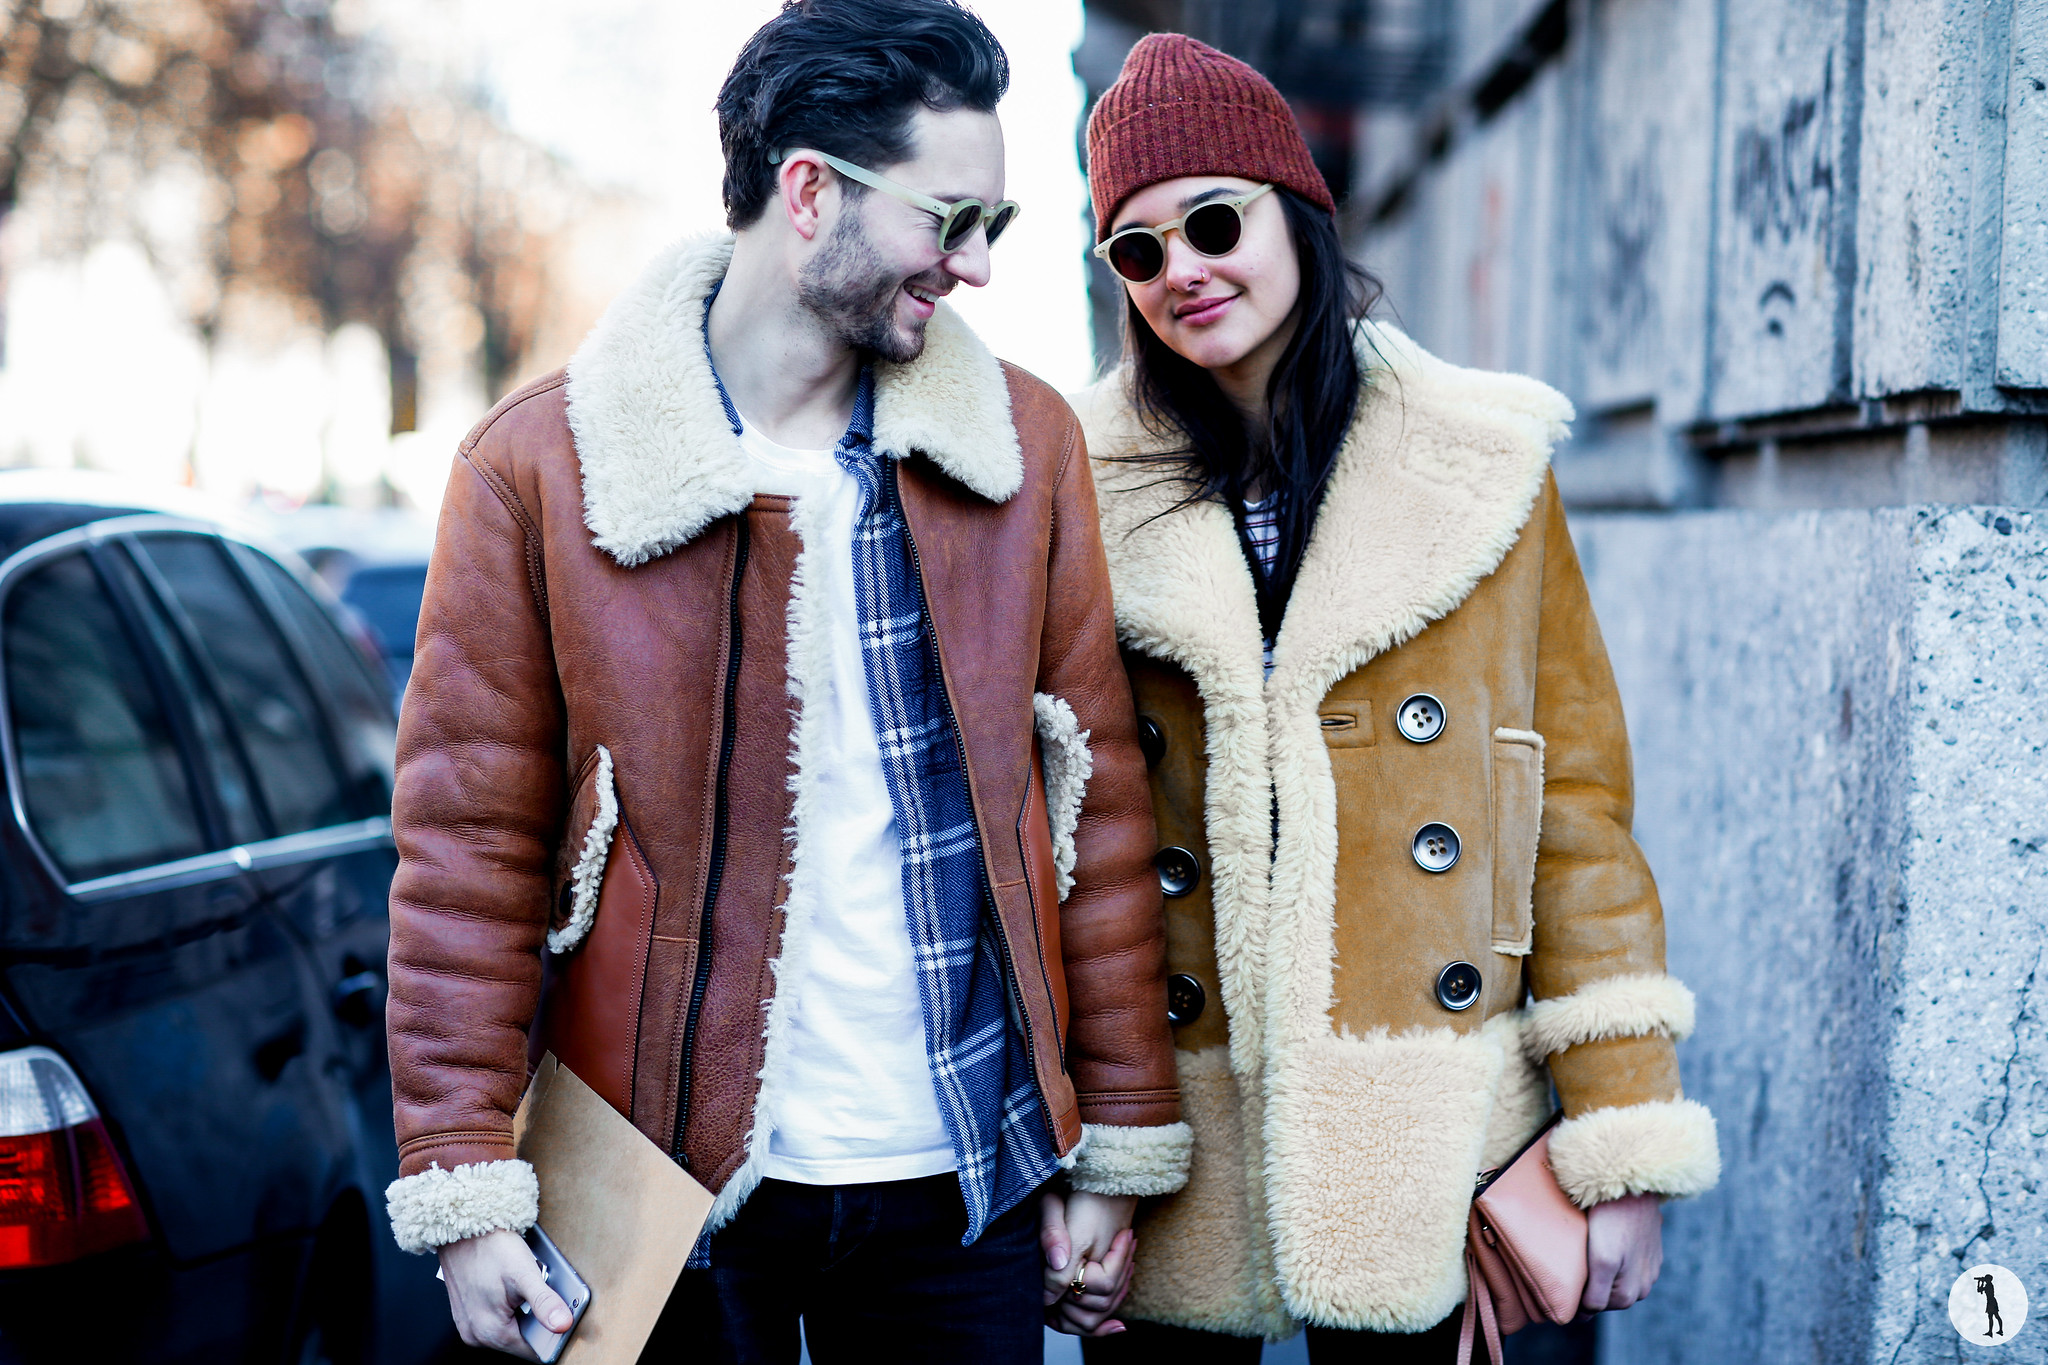 Isaac Hindin-Miller and Jenny Albright at Milan Fashion Week Menswear-2